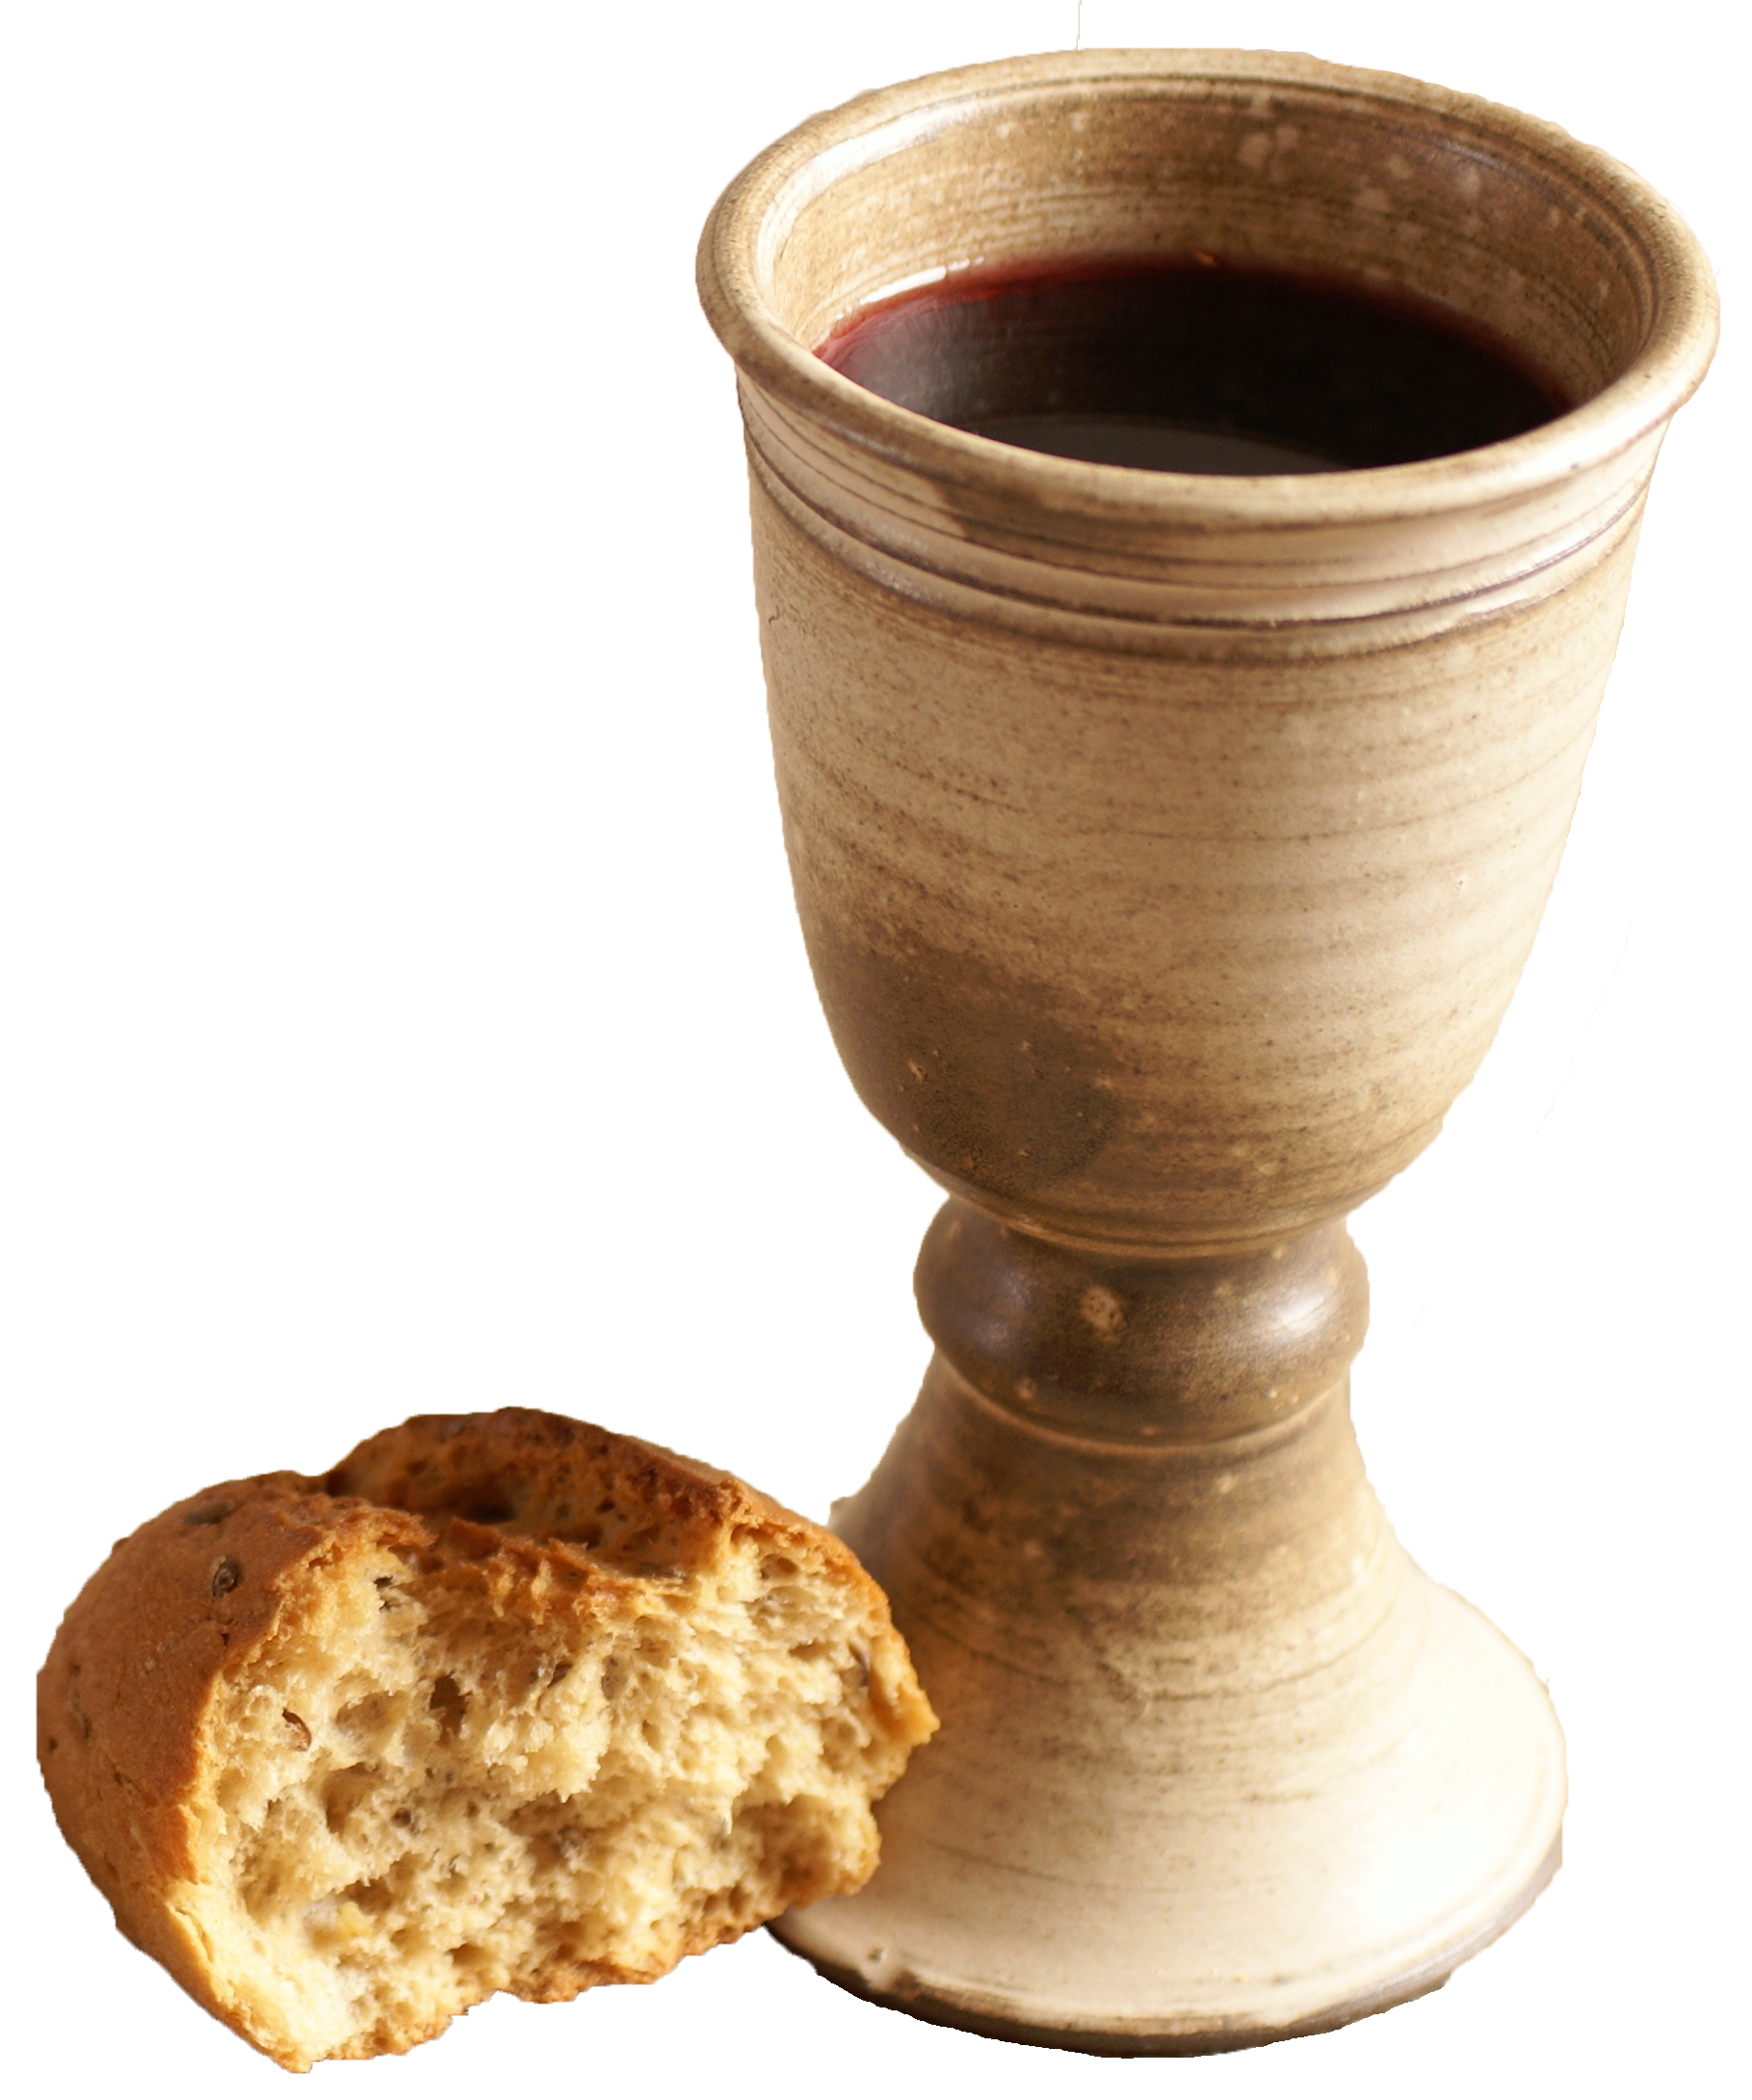 Communion cup png. First united methodist church